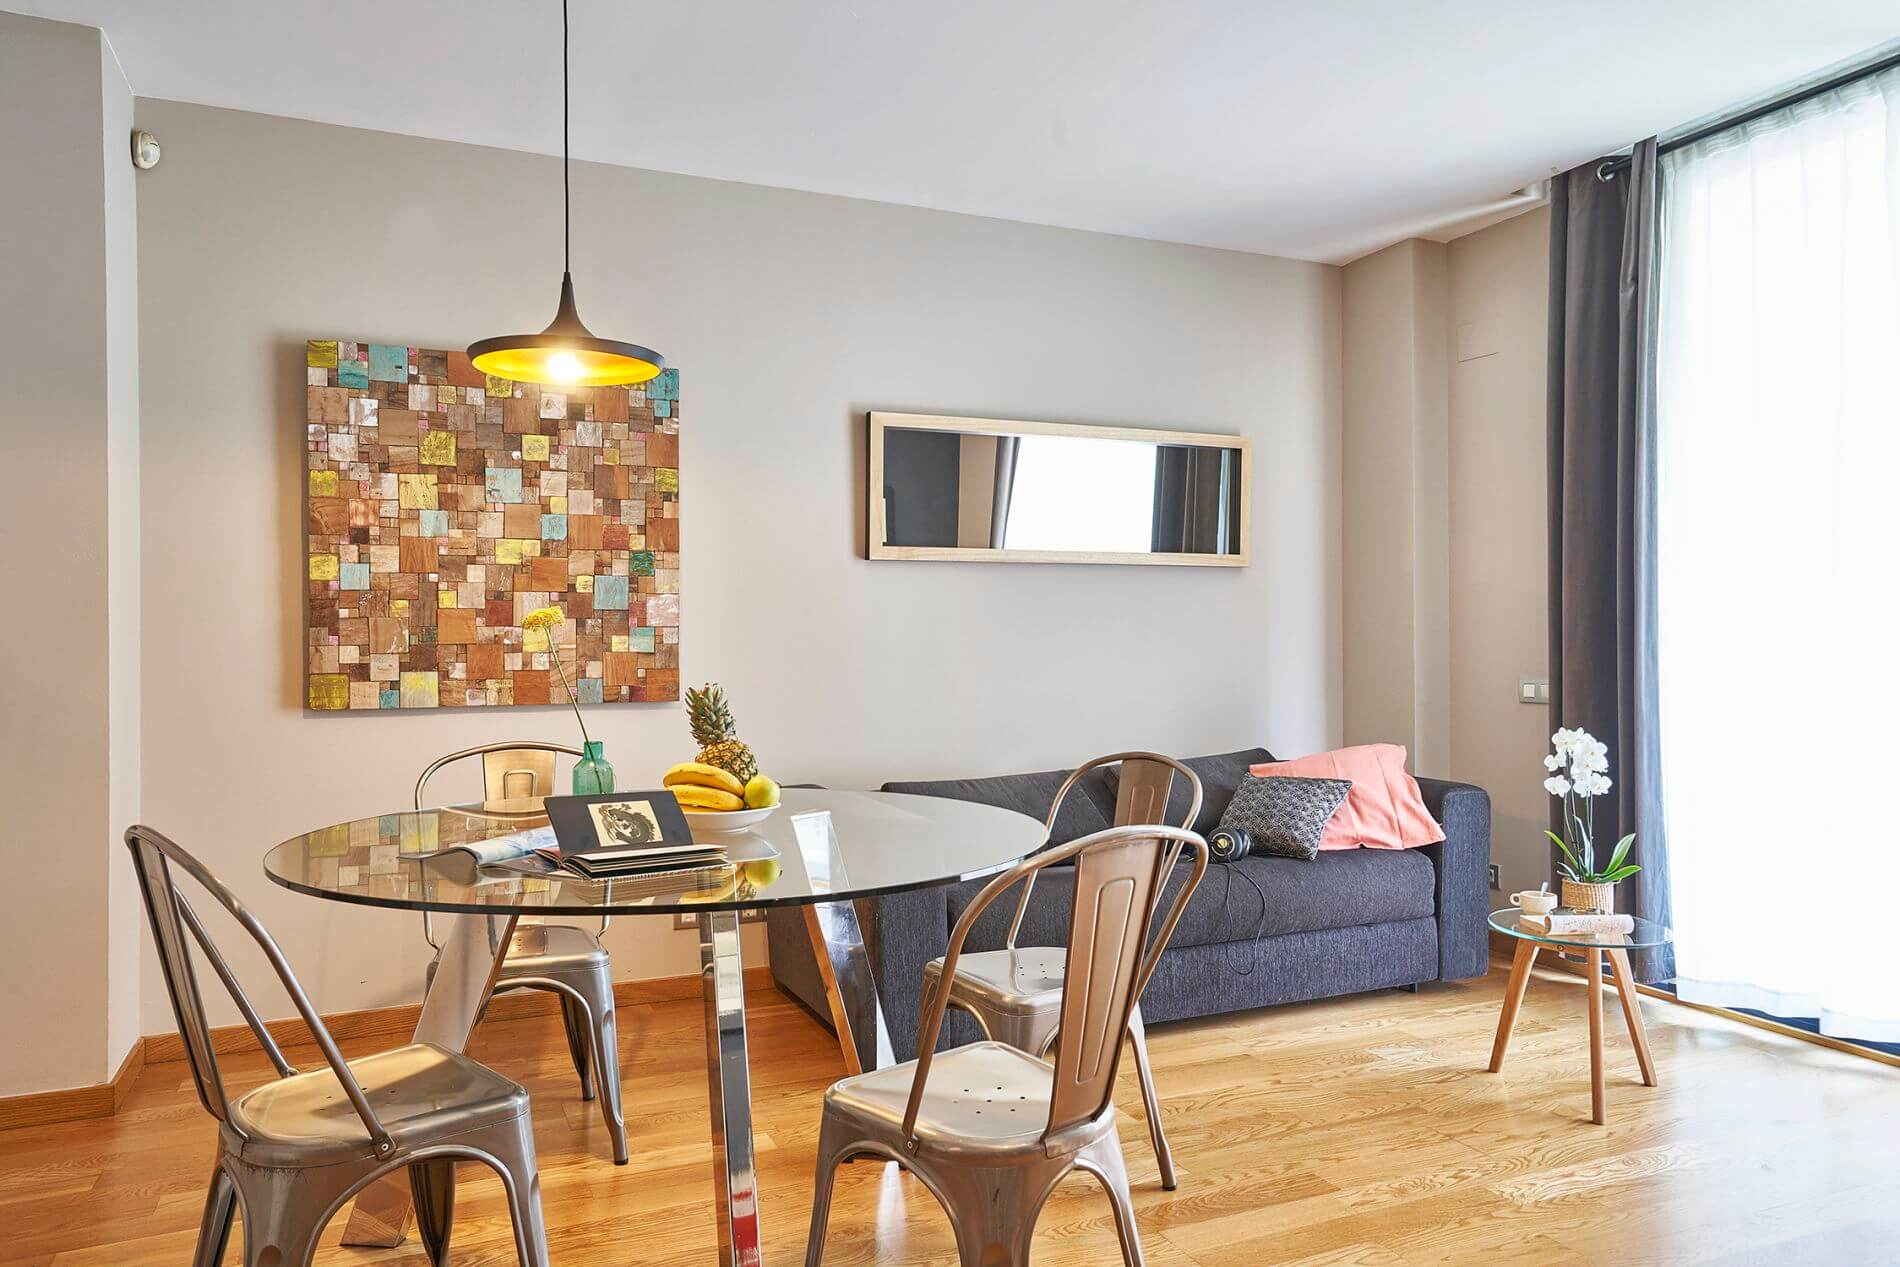 Gorgeous furnished rental flat in Eixample with instant book option